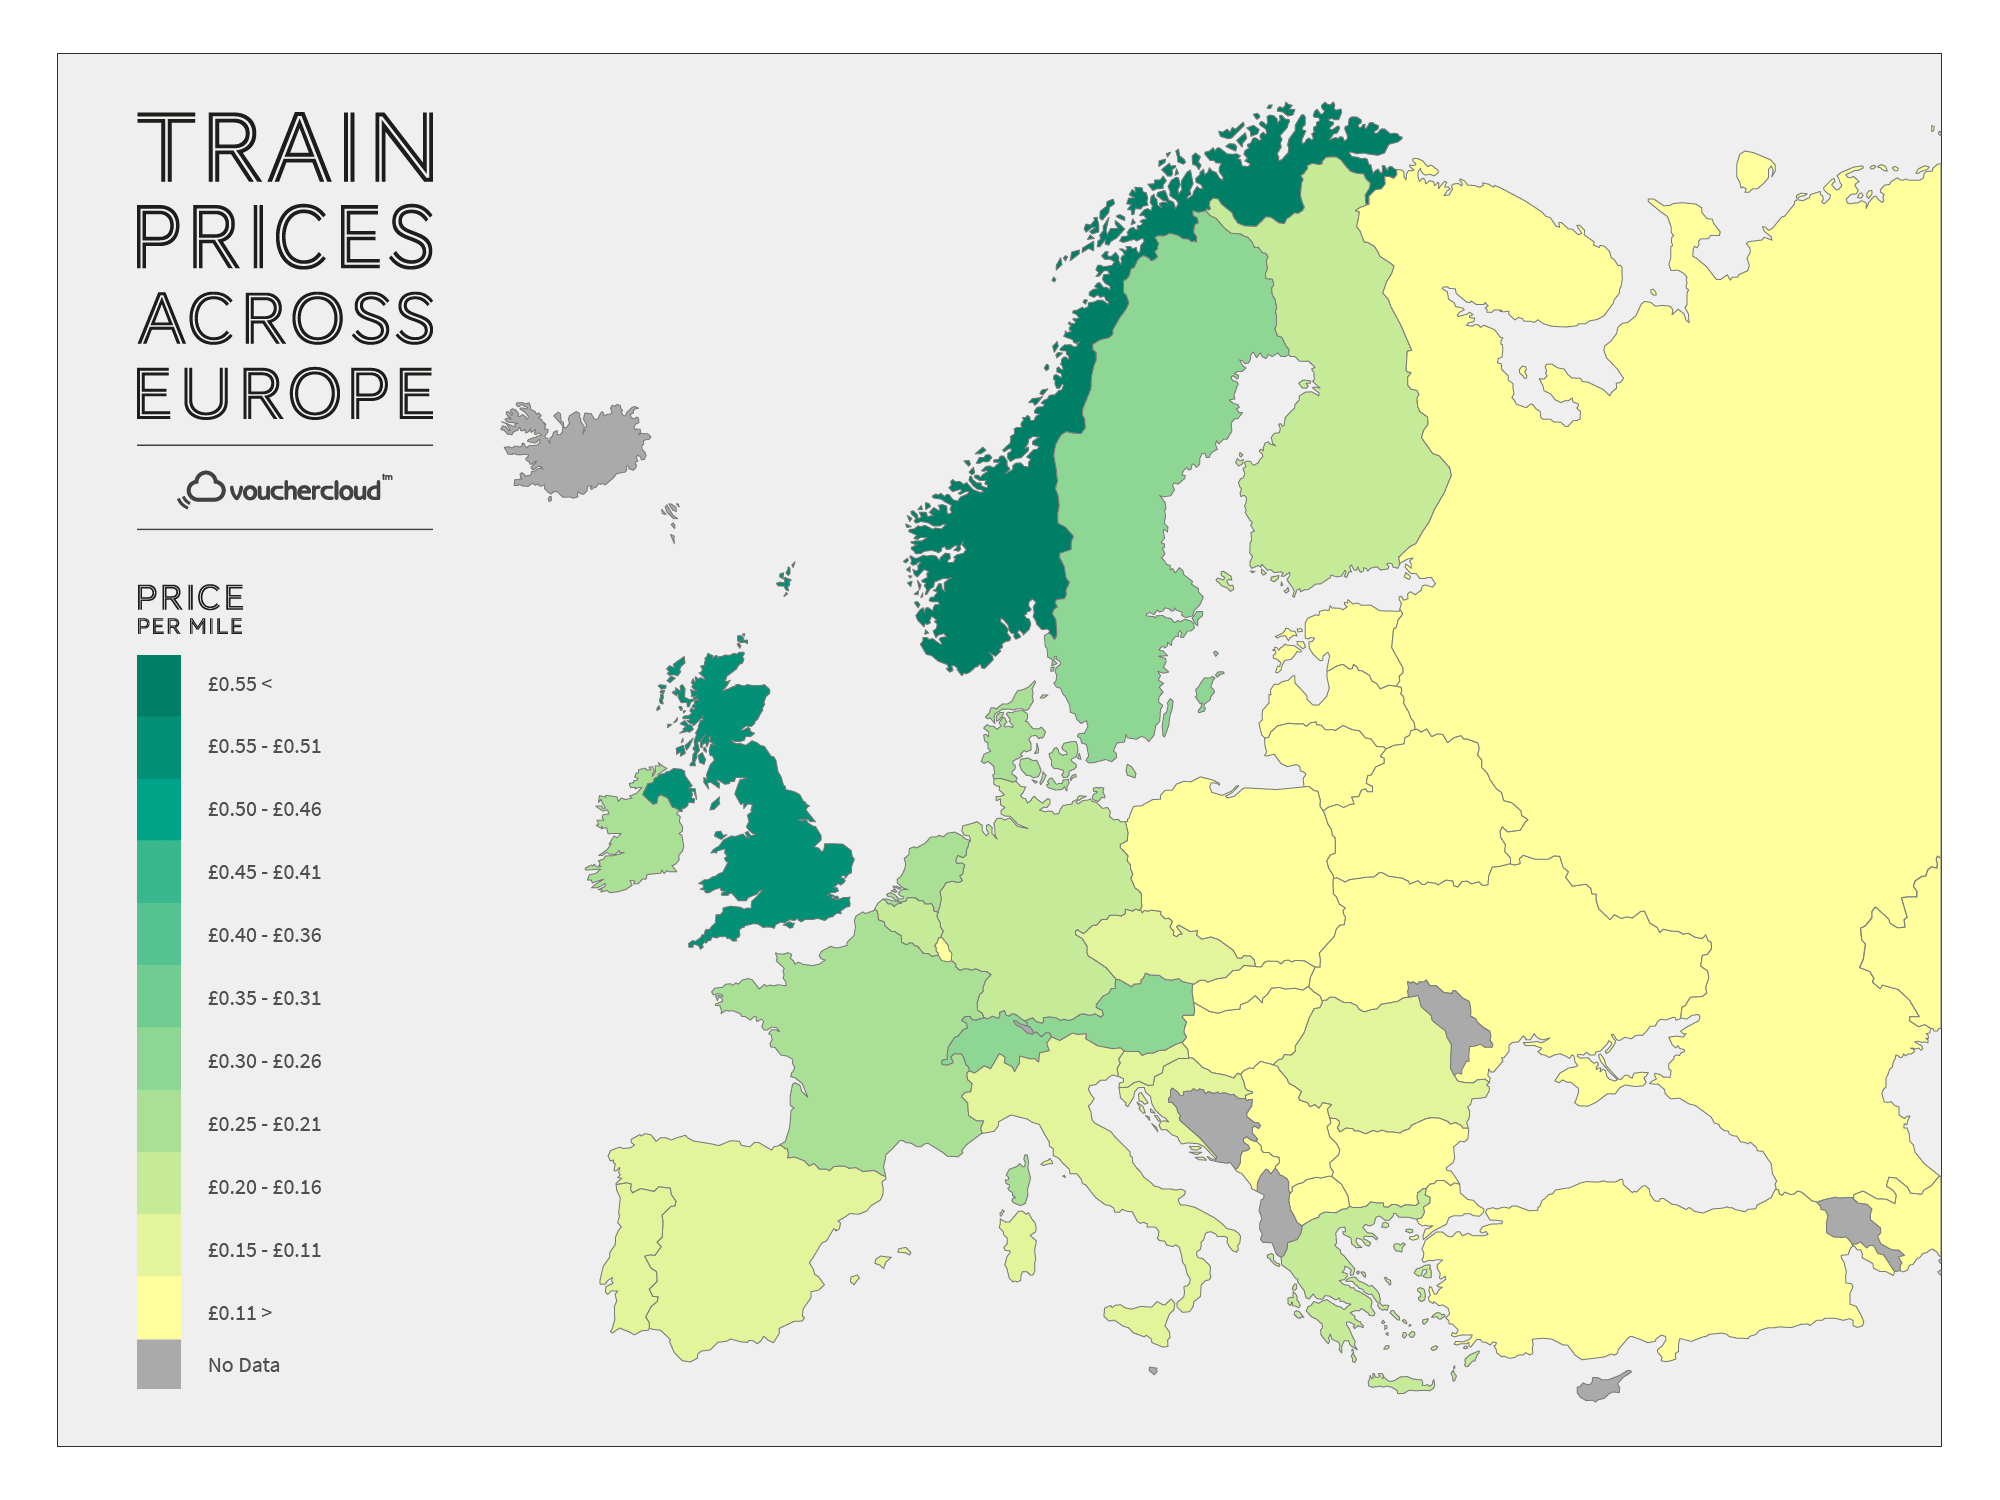 Train Prices Across Europe - Map